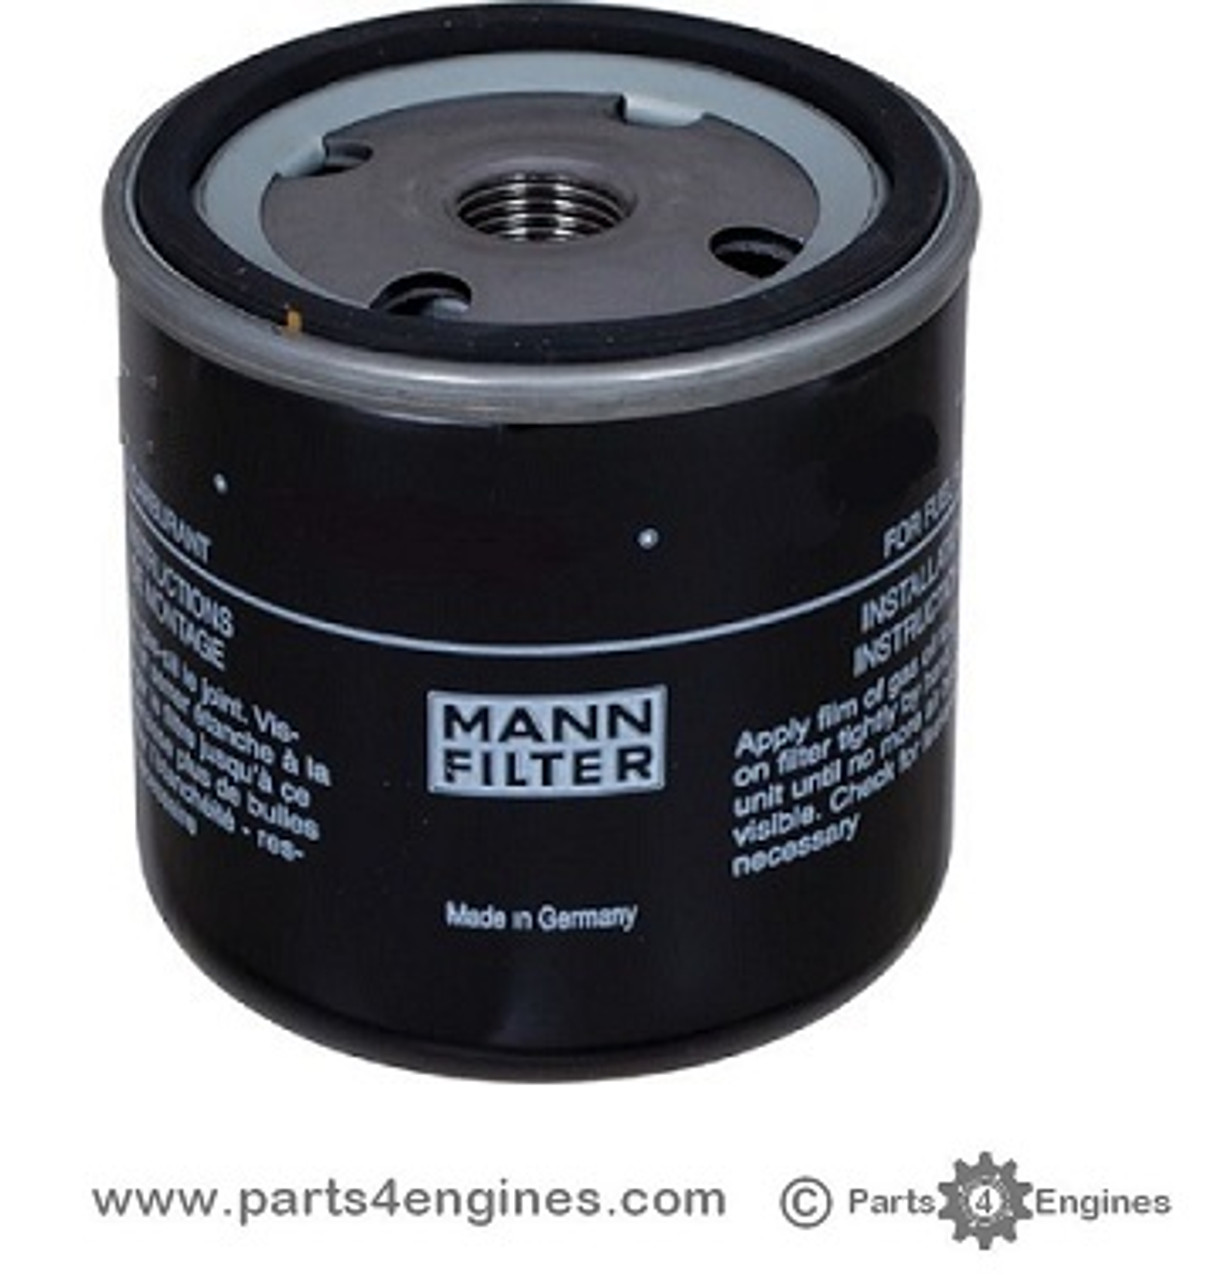 Volvo Penta 2003 fuel filter | Volvo Fuel Filter 2003 |  | Parts 4 Engines